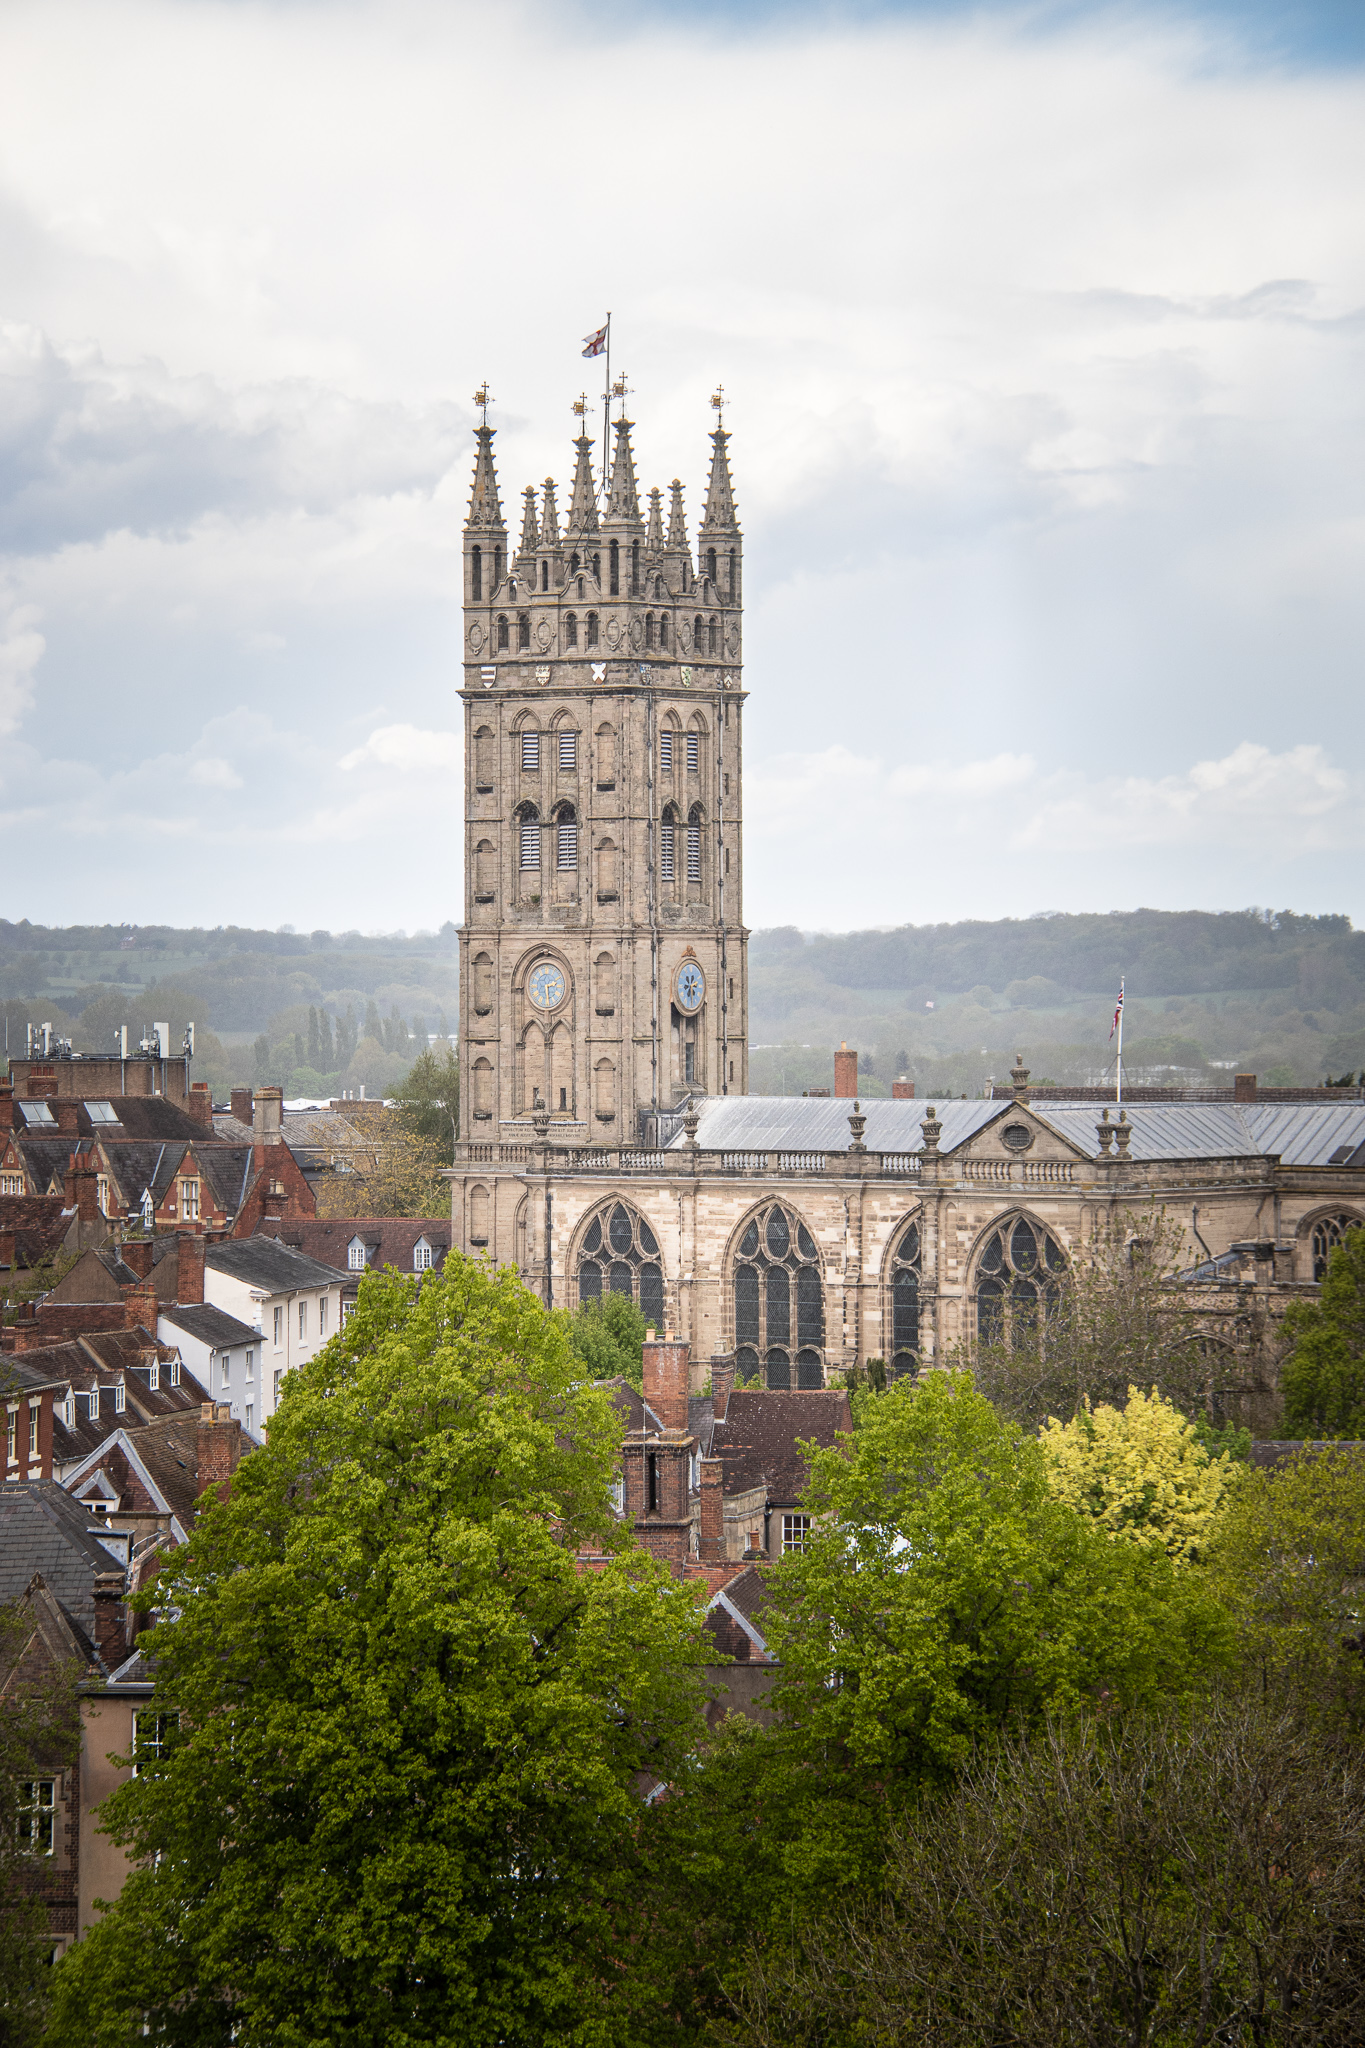 The Collegiate Church of St Mary's viewed from Guy's Tower at the Castle.